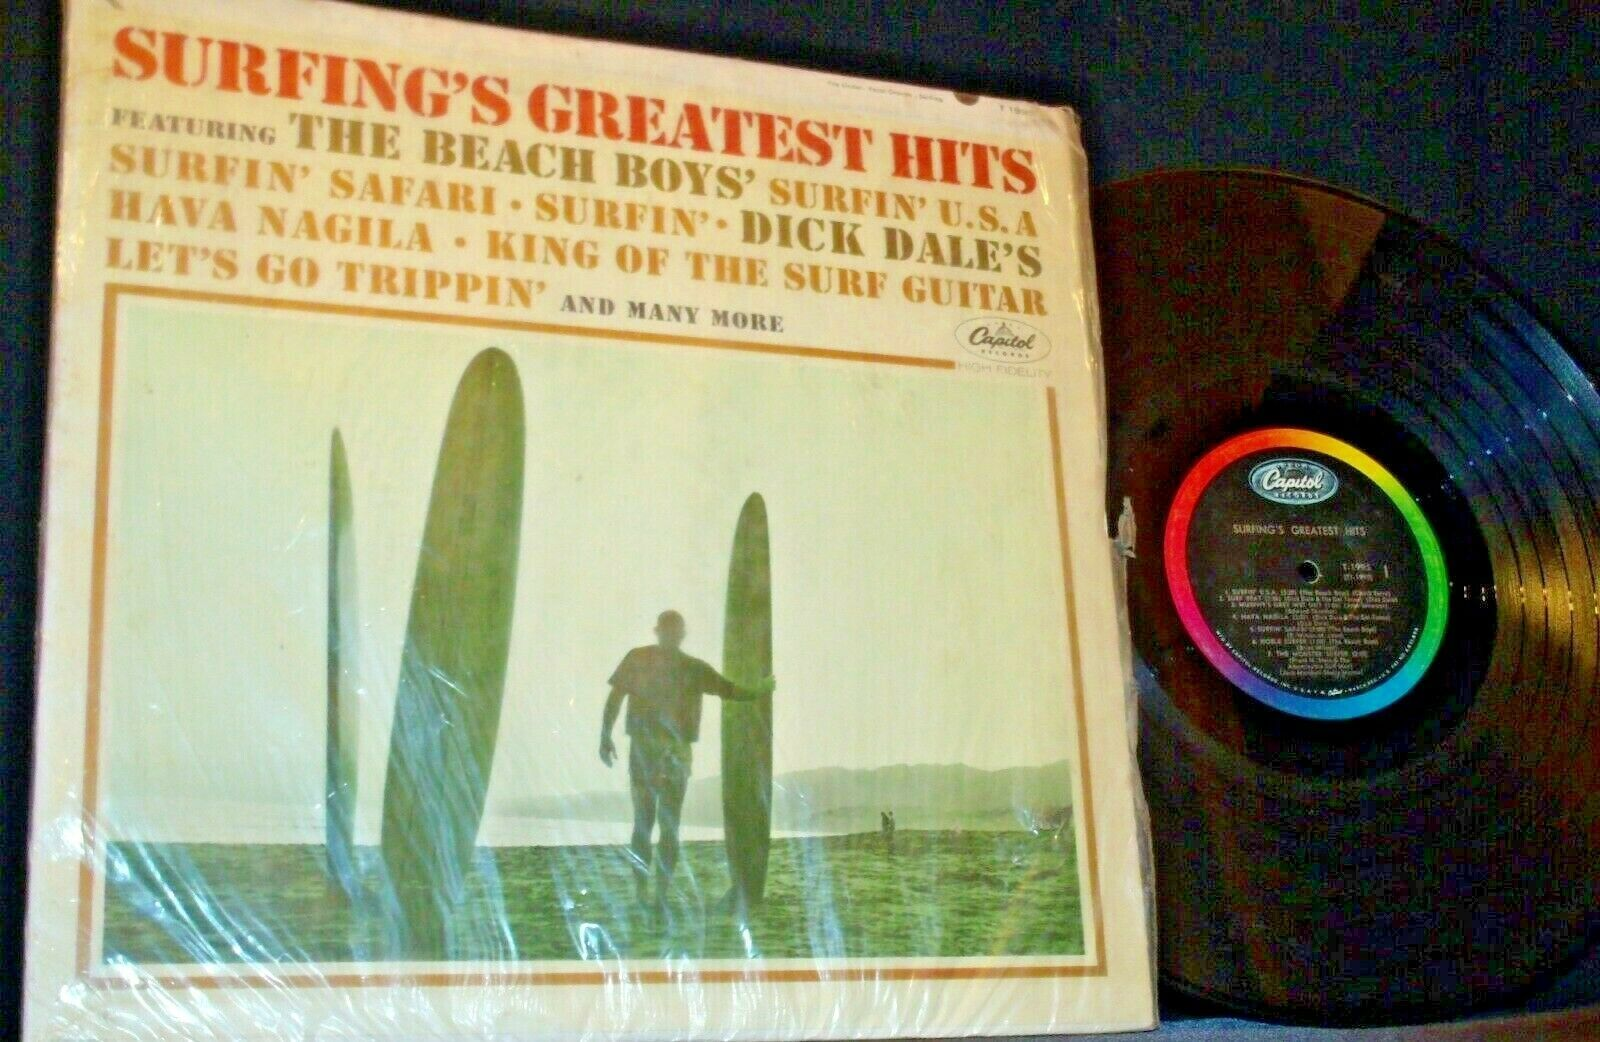 Surfing's Greatest Hits Capitol Record T1995 AA-192005 Collectible